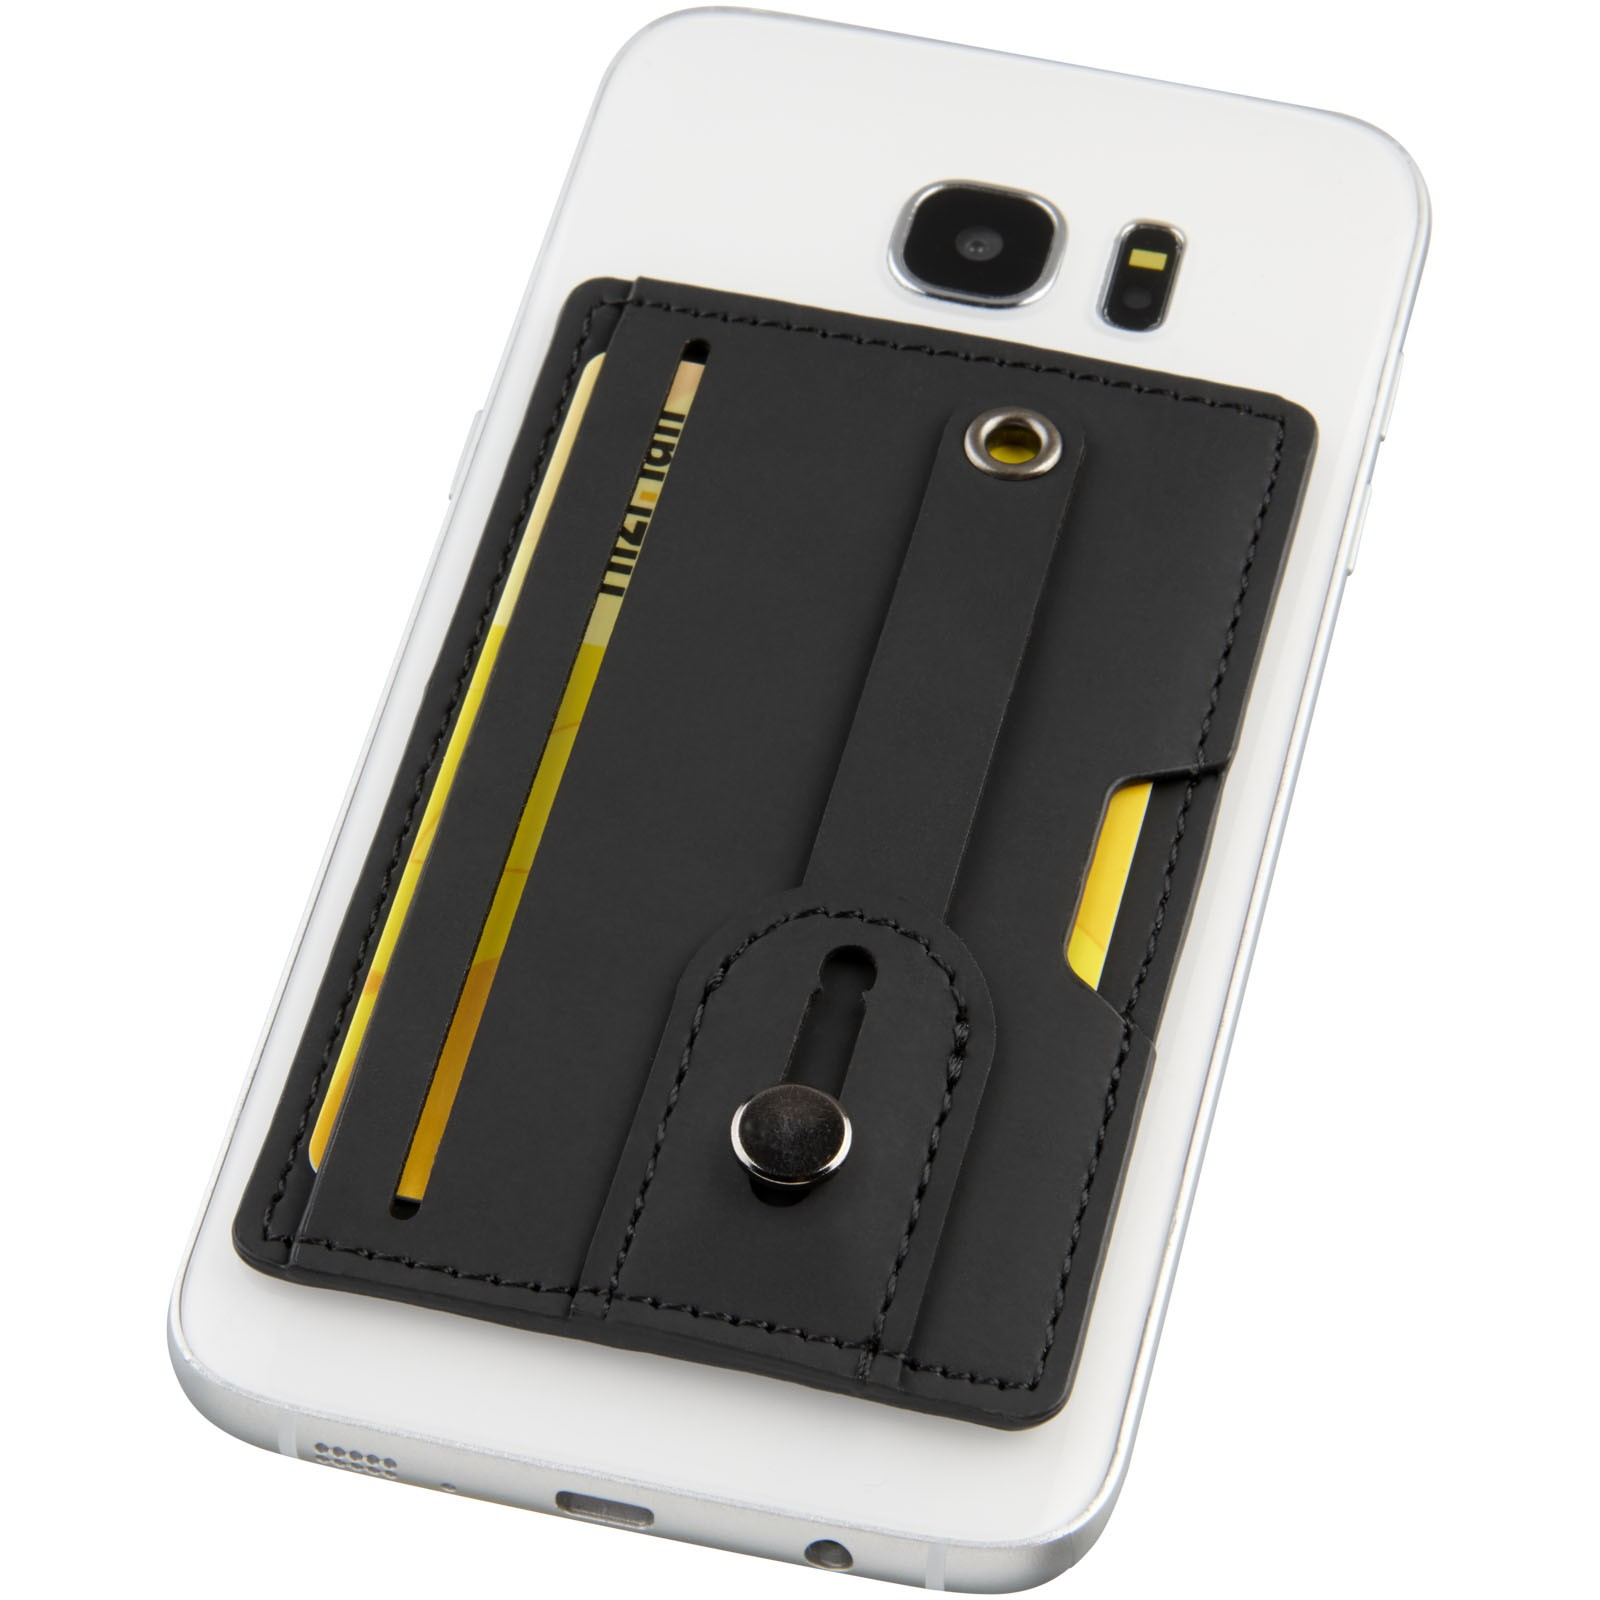 Prime RFID phone wallet with strap - Solid black